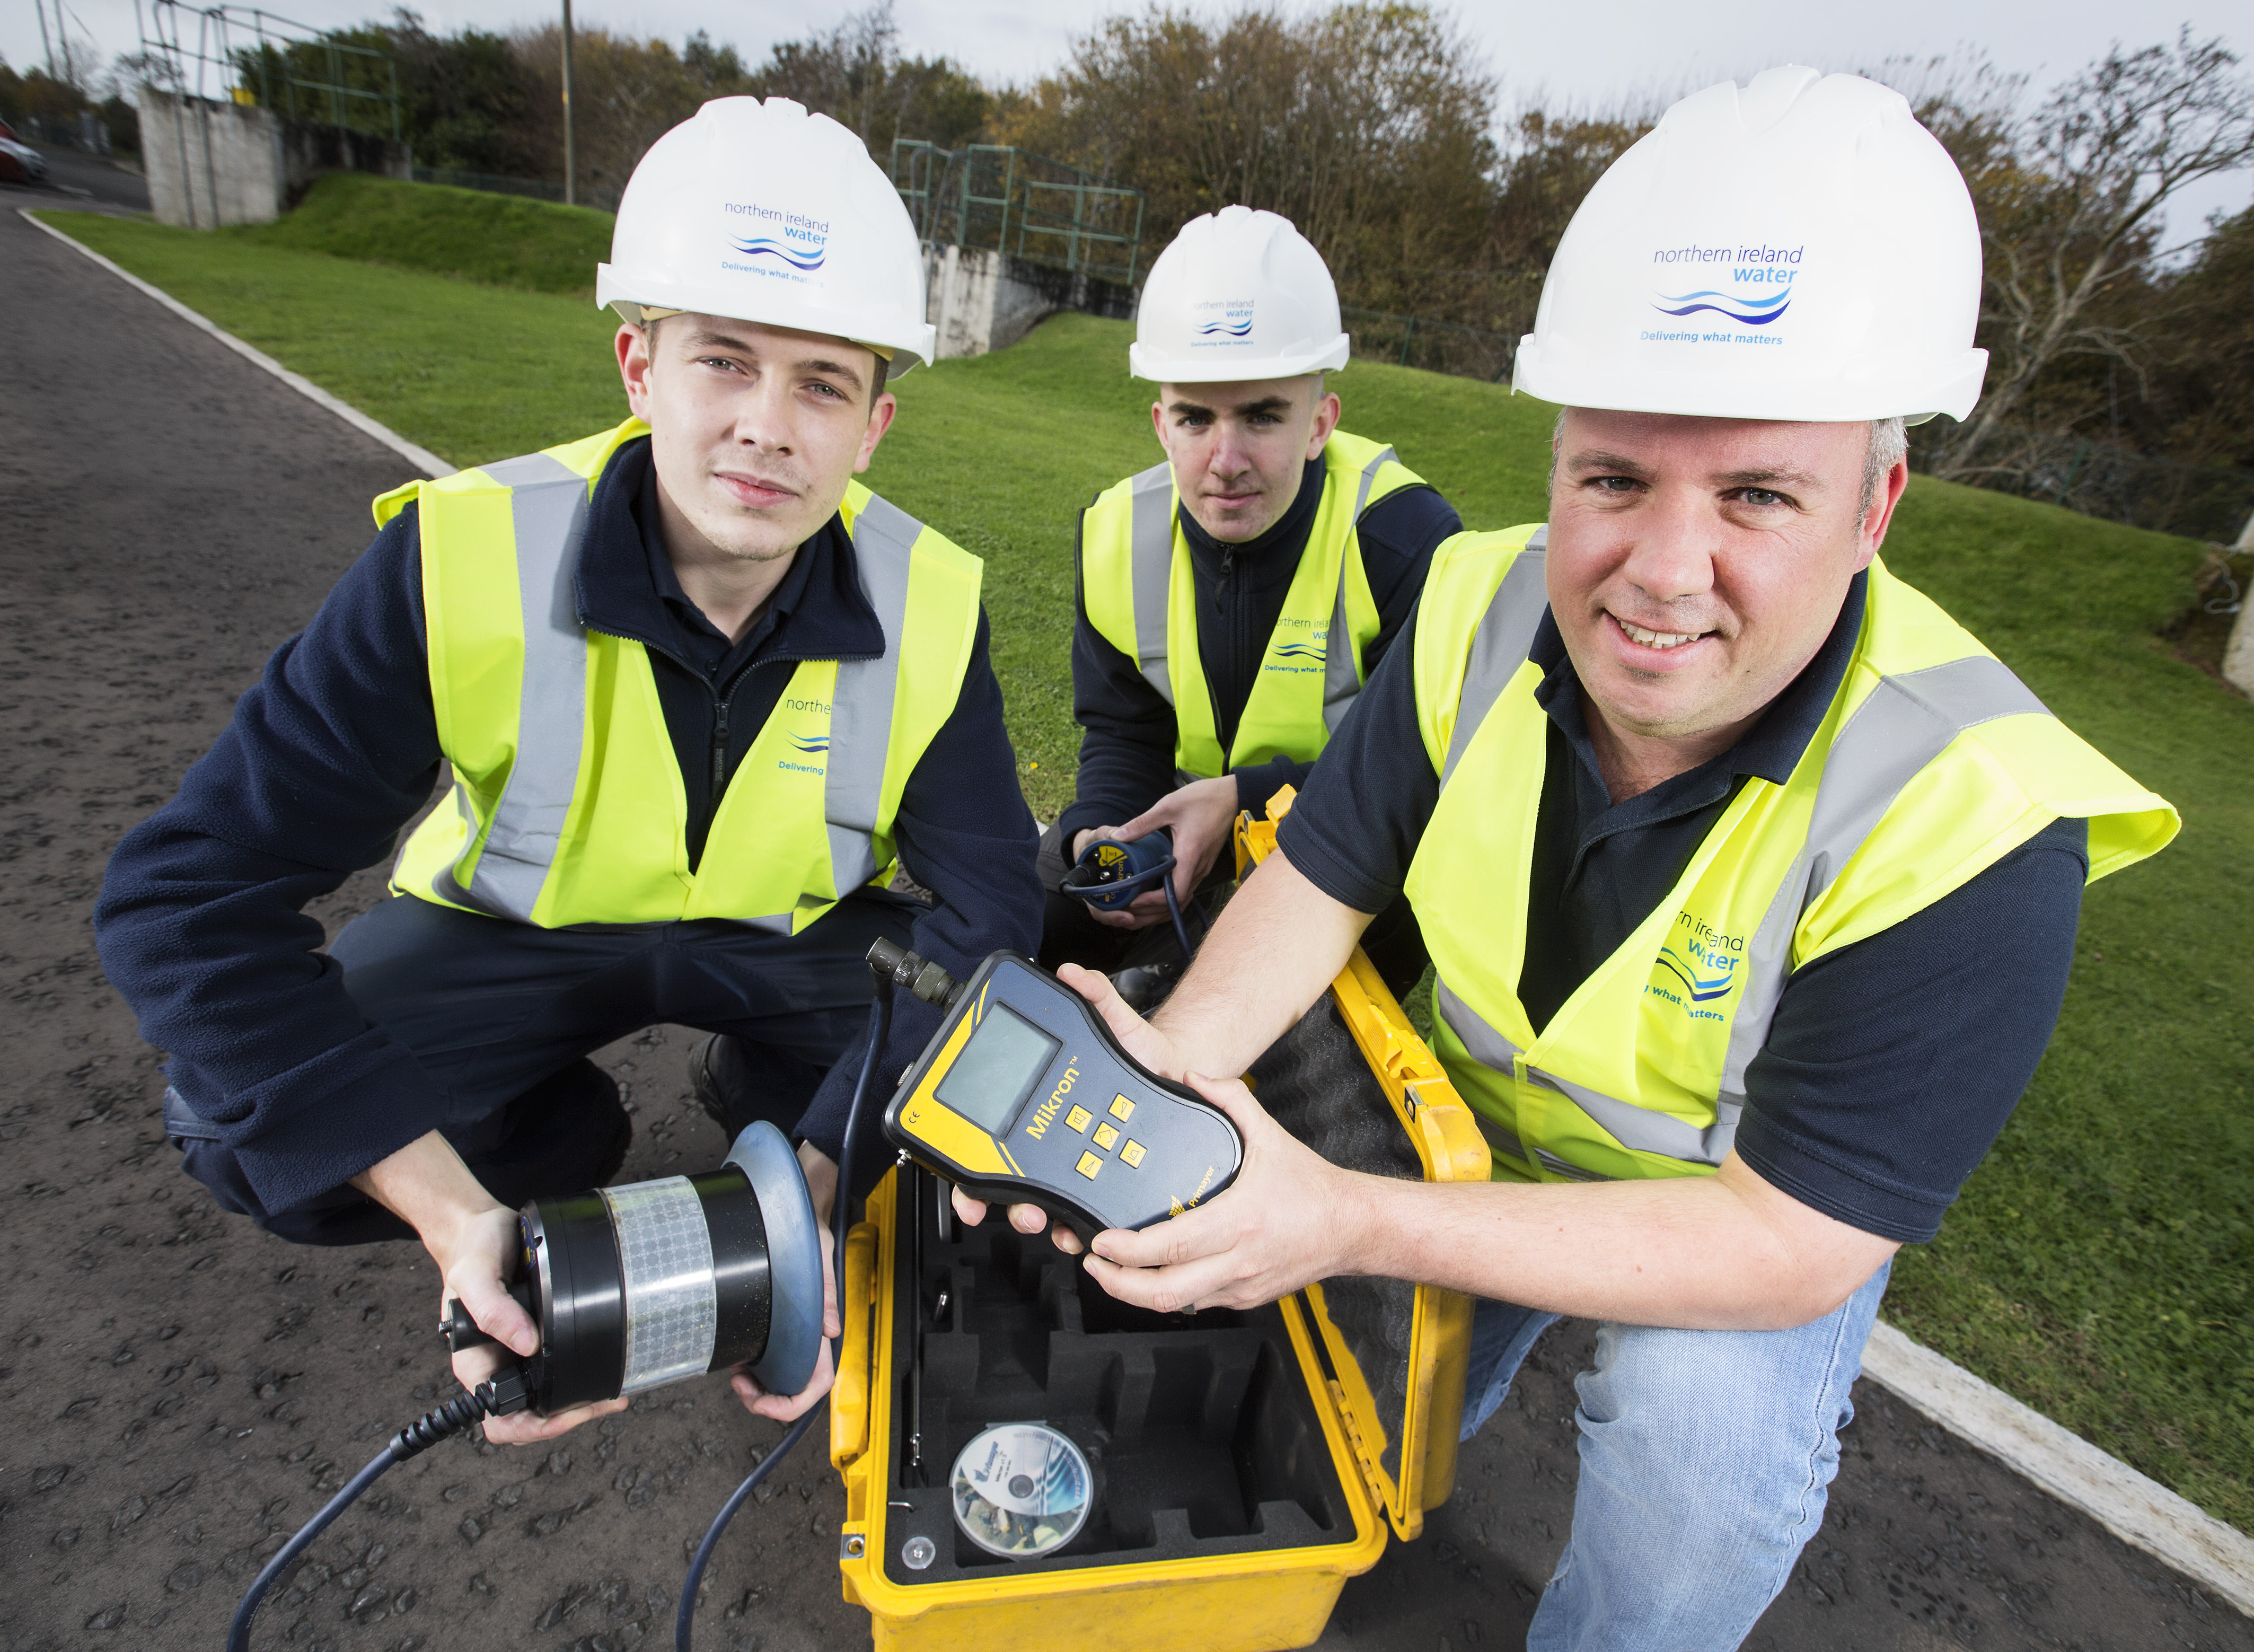 Chris Cole, Technical Learning and Development Advisor (right) shows Jack Reynolds (far left) and Toby Wright (left) how to search for leaks